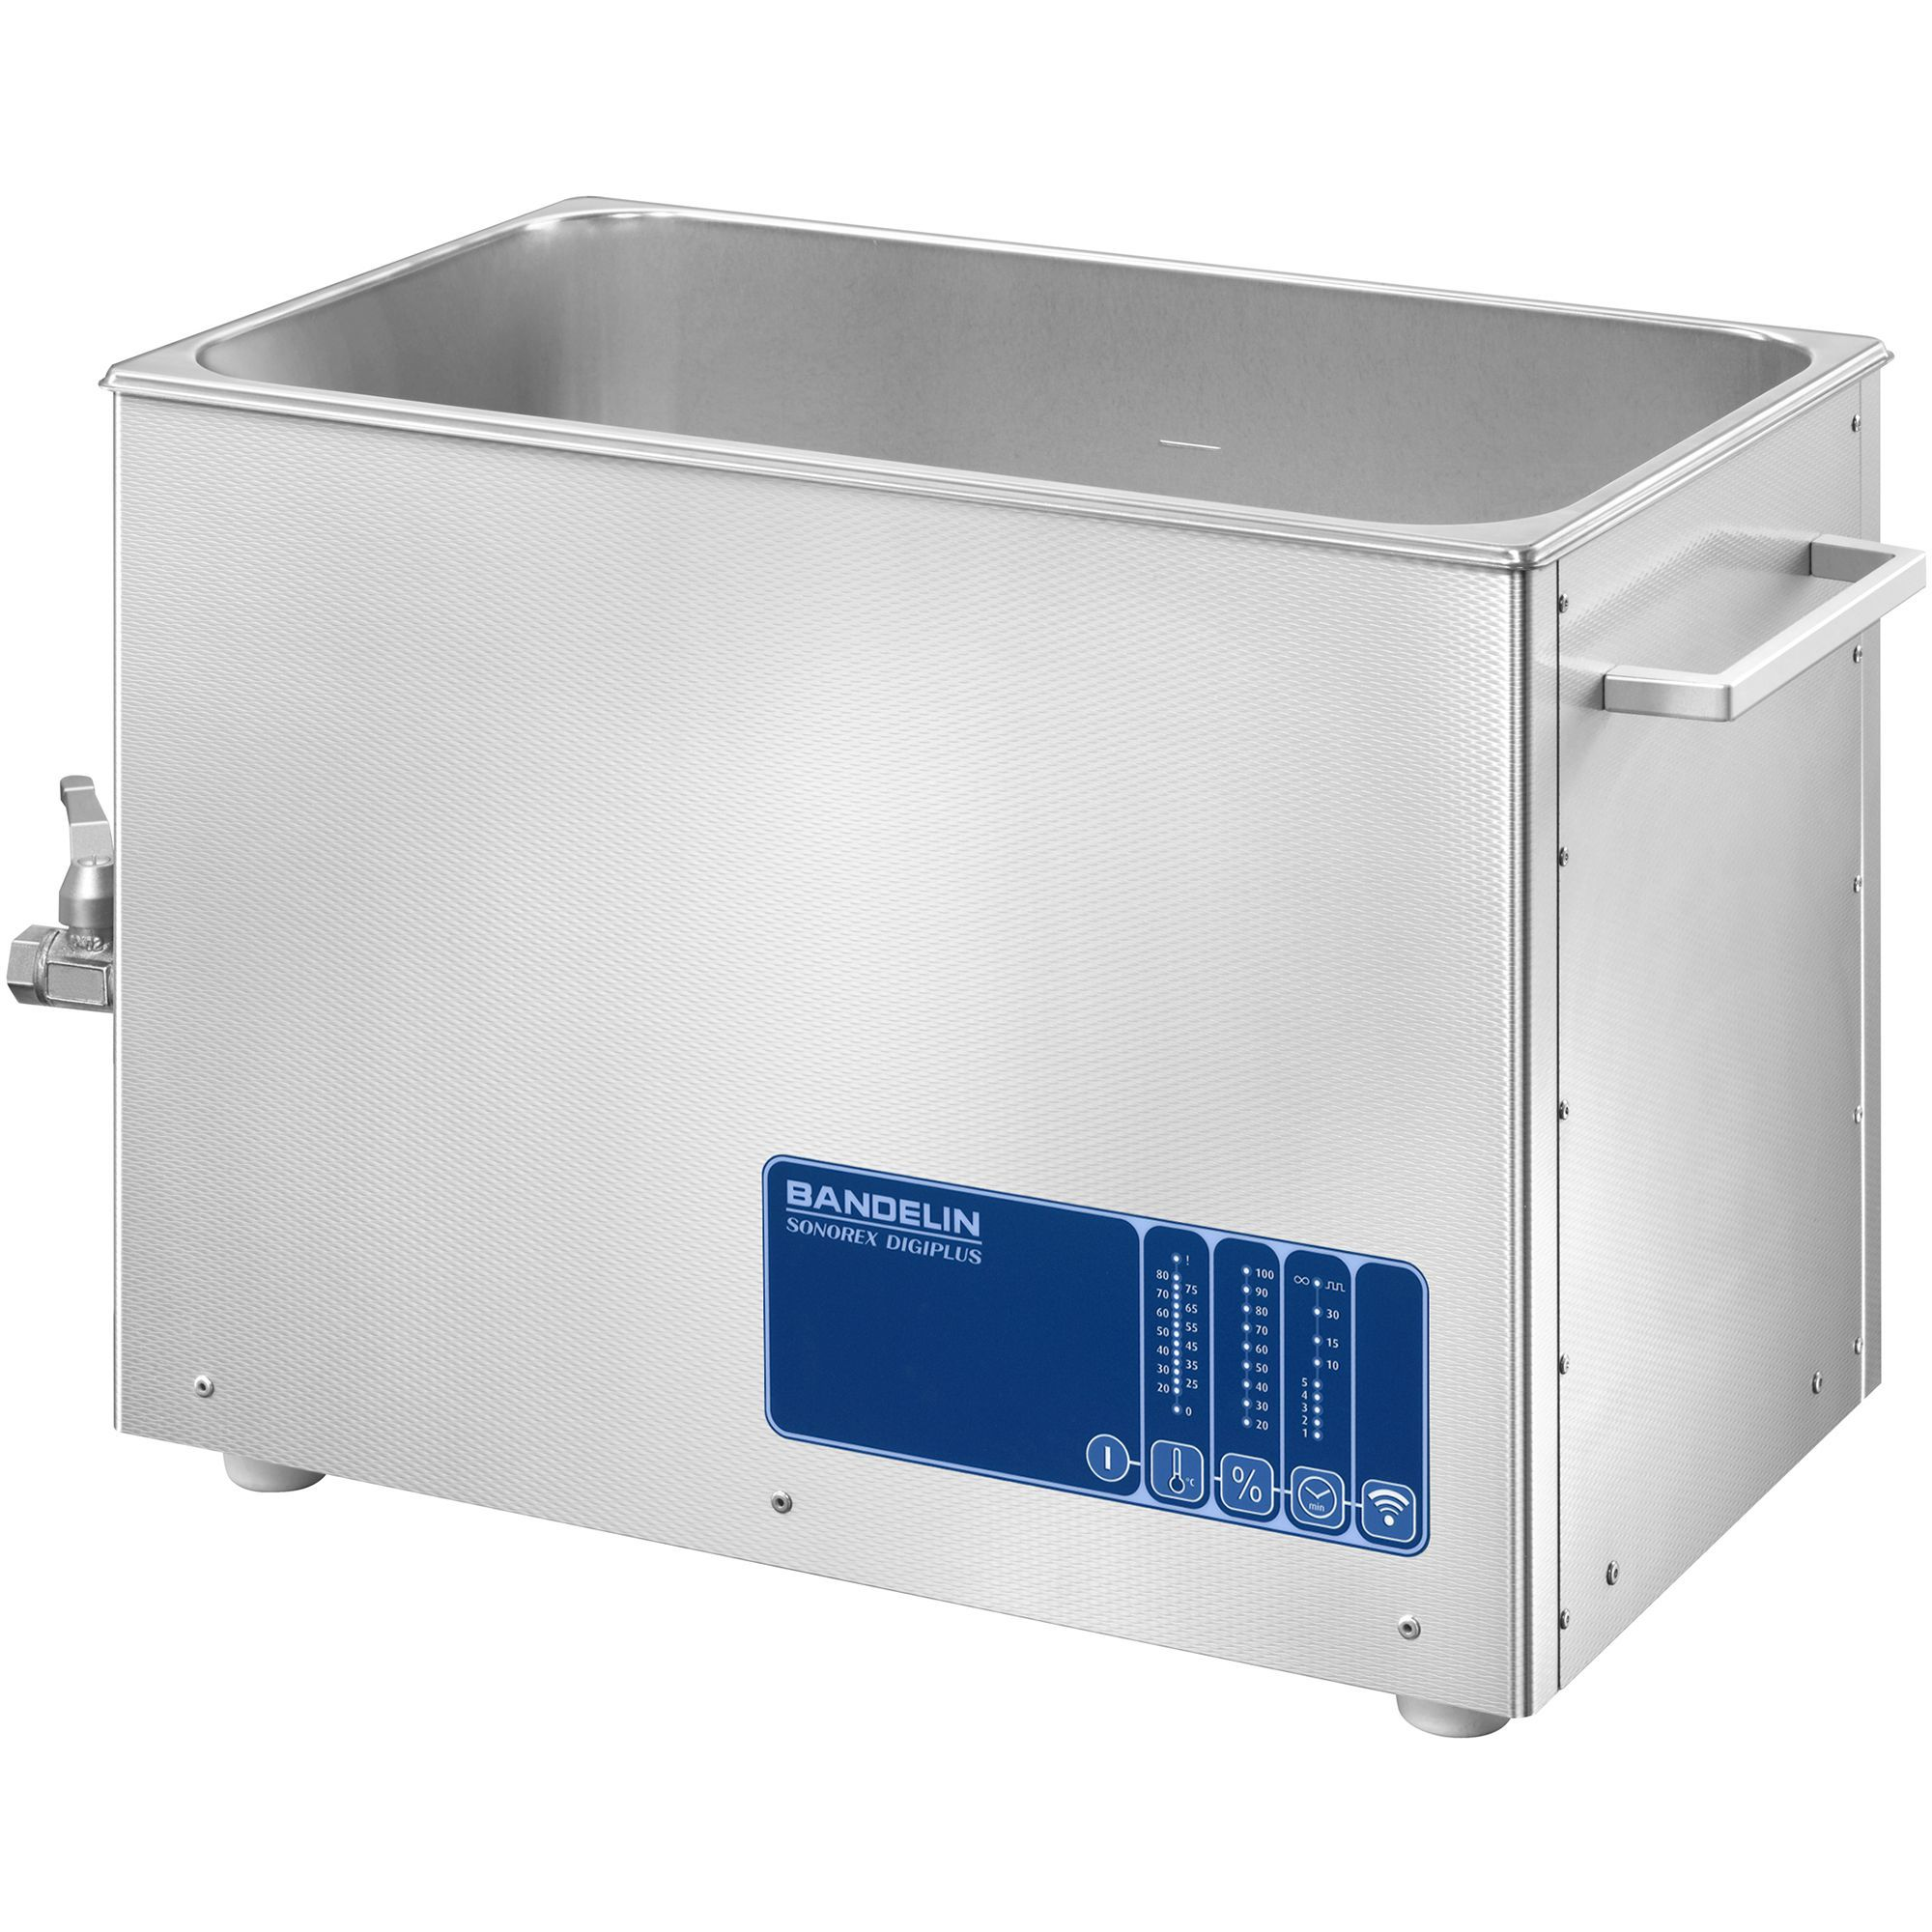 Bandelin indusutail ultrasonic cleaner